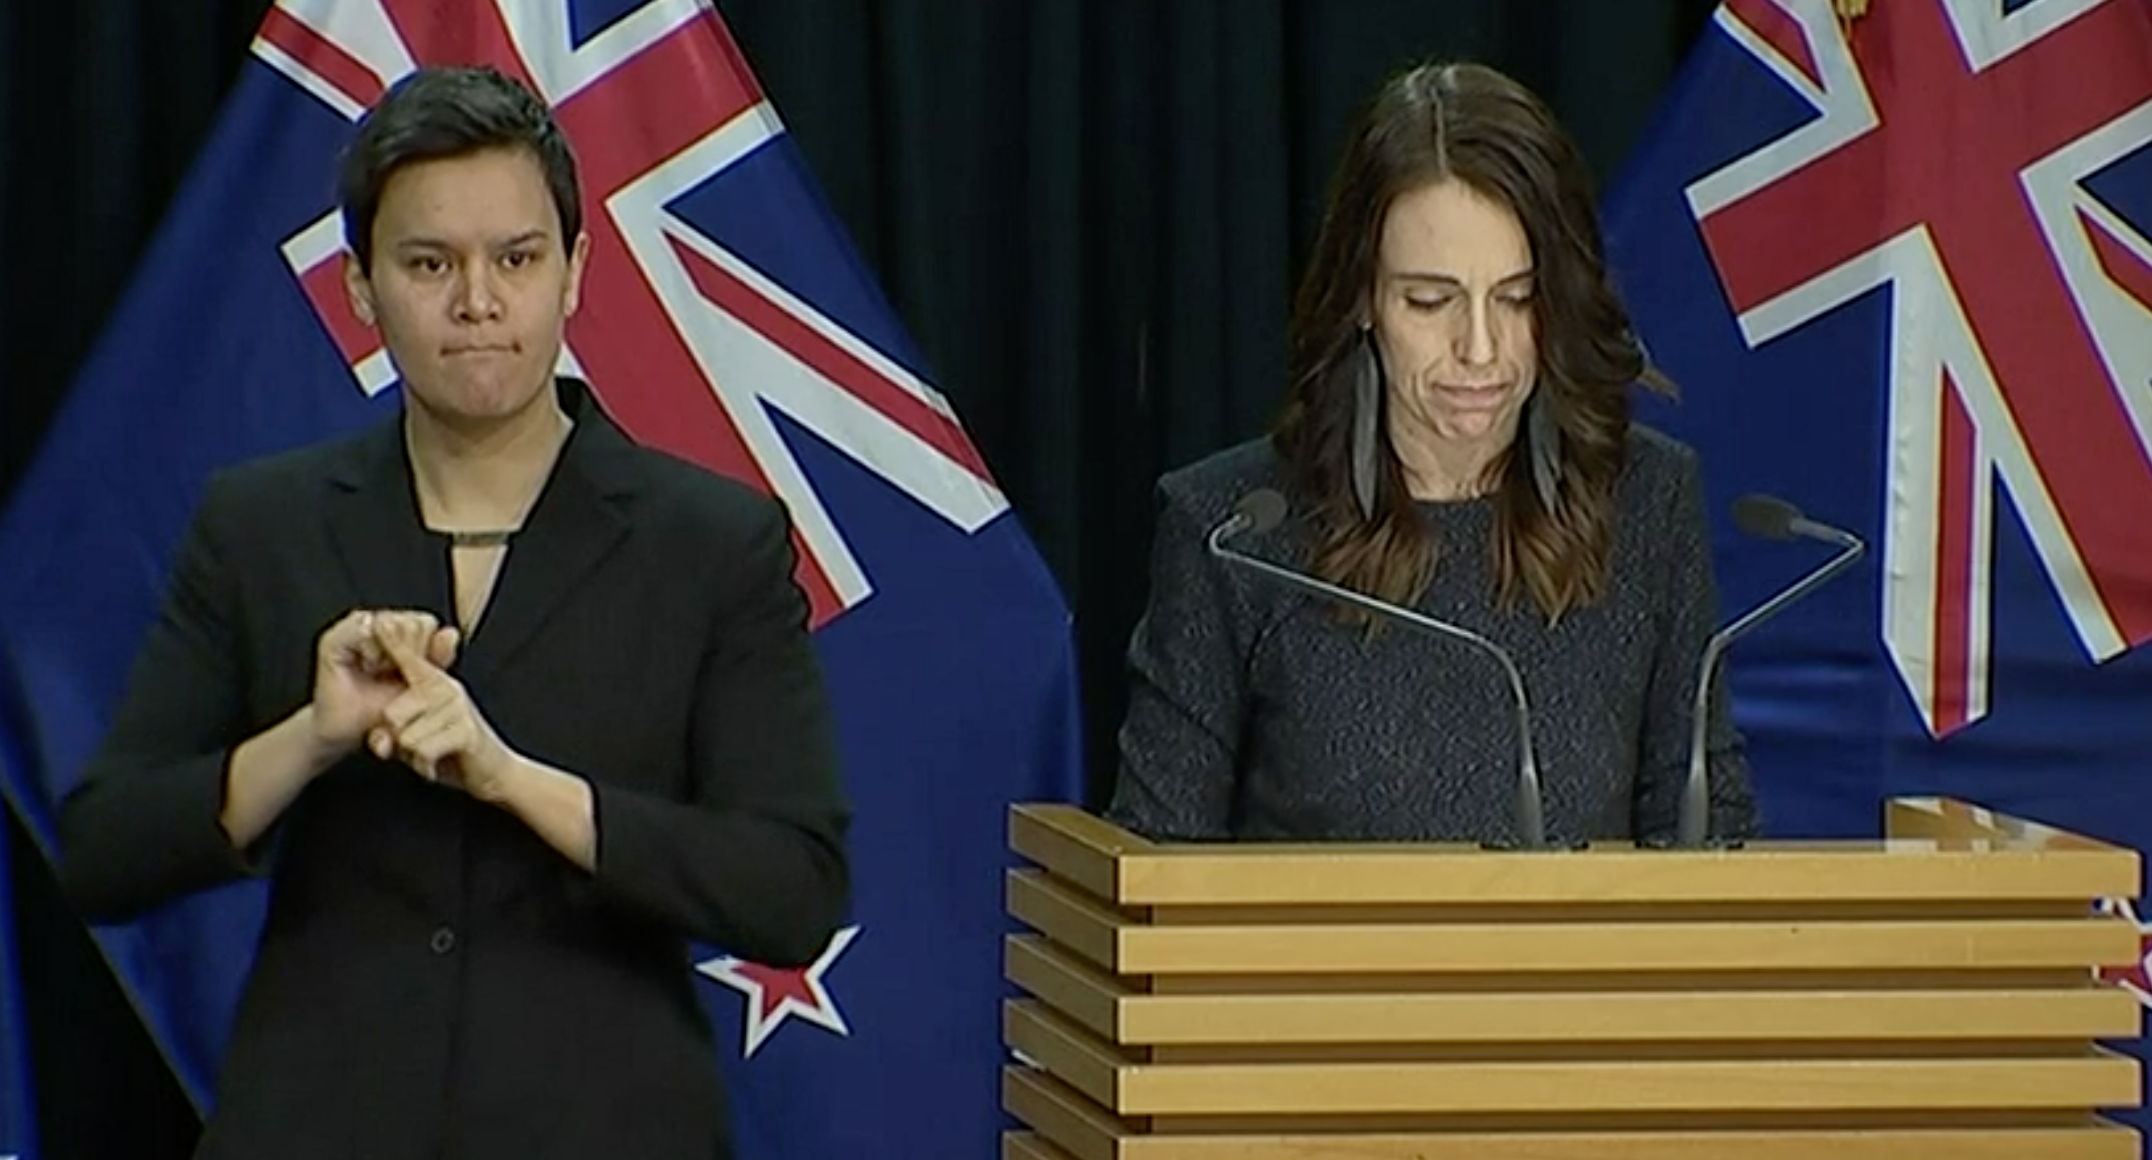 Jacinda Ardern sacks immigration minister over year-long affair with staff member